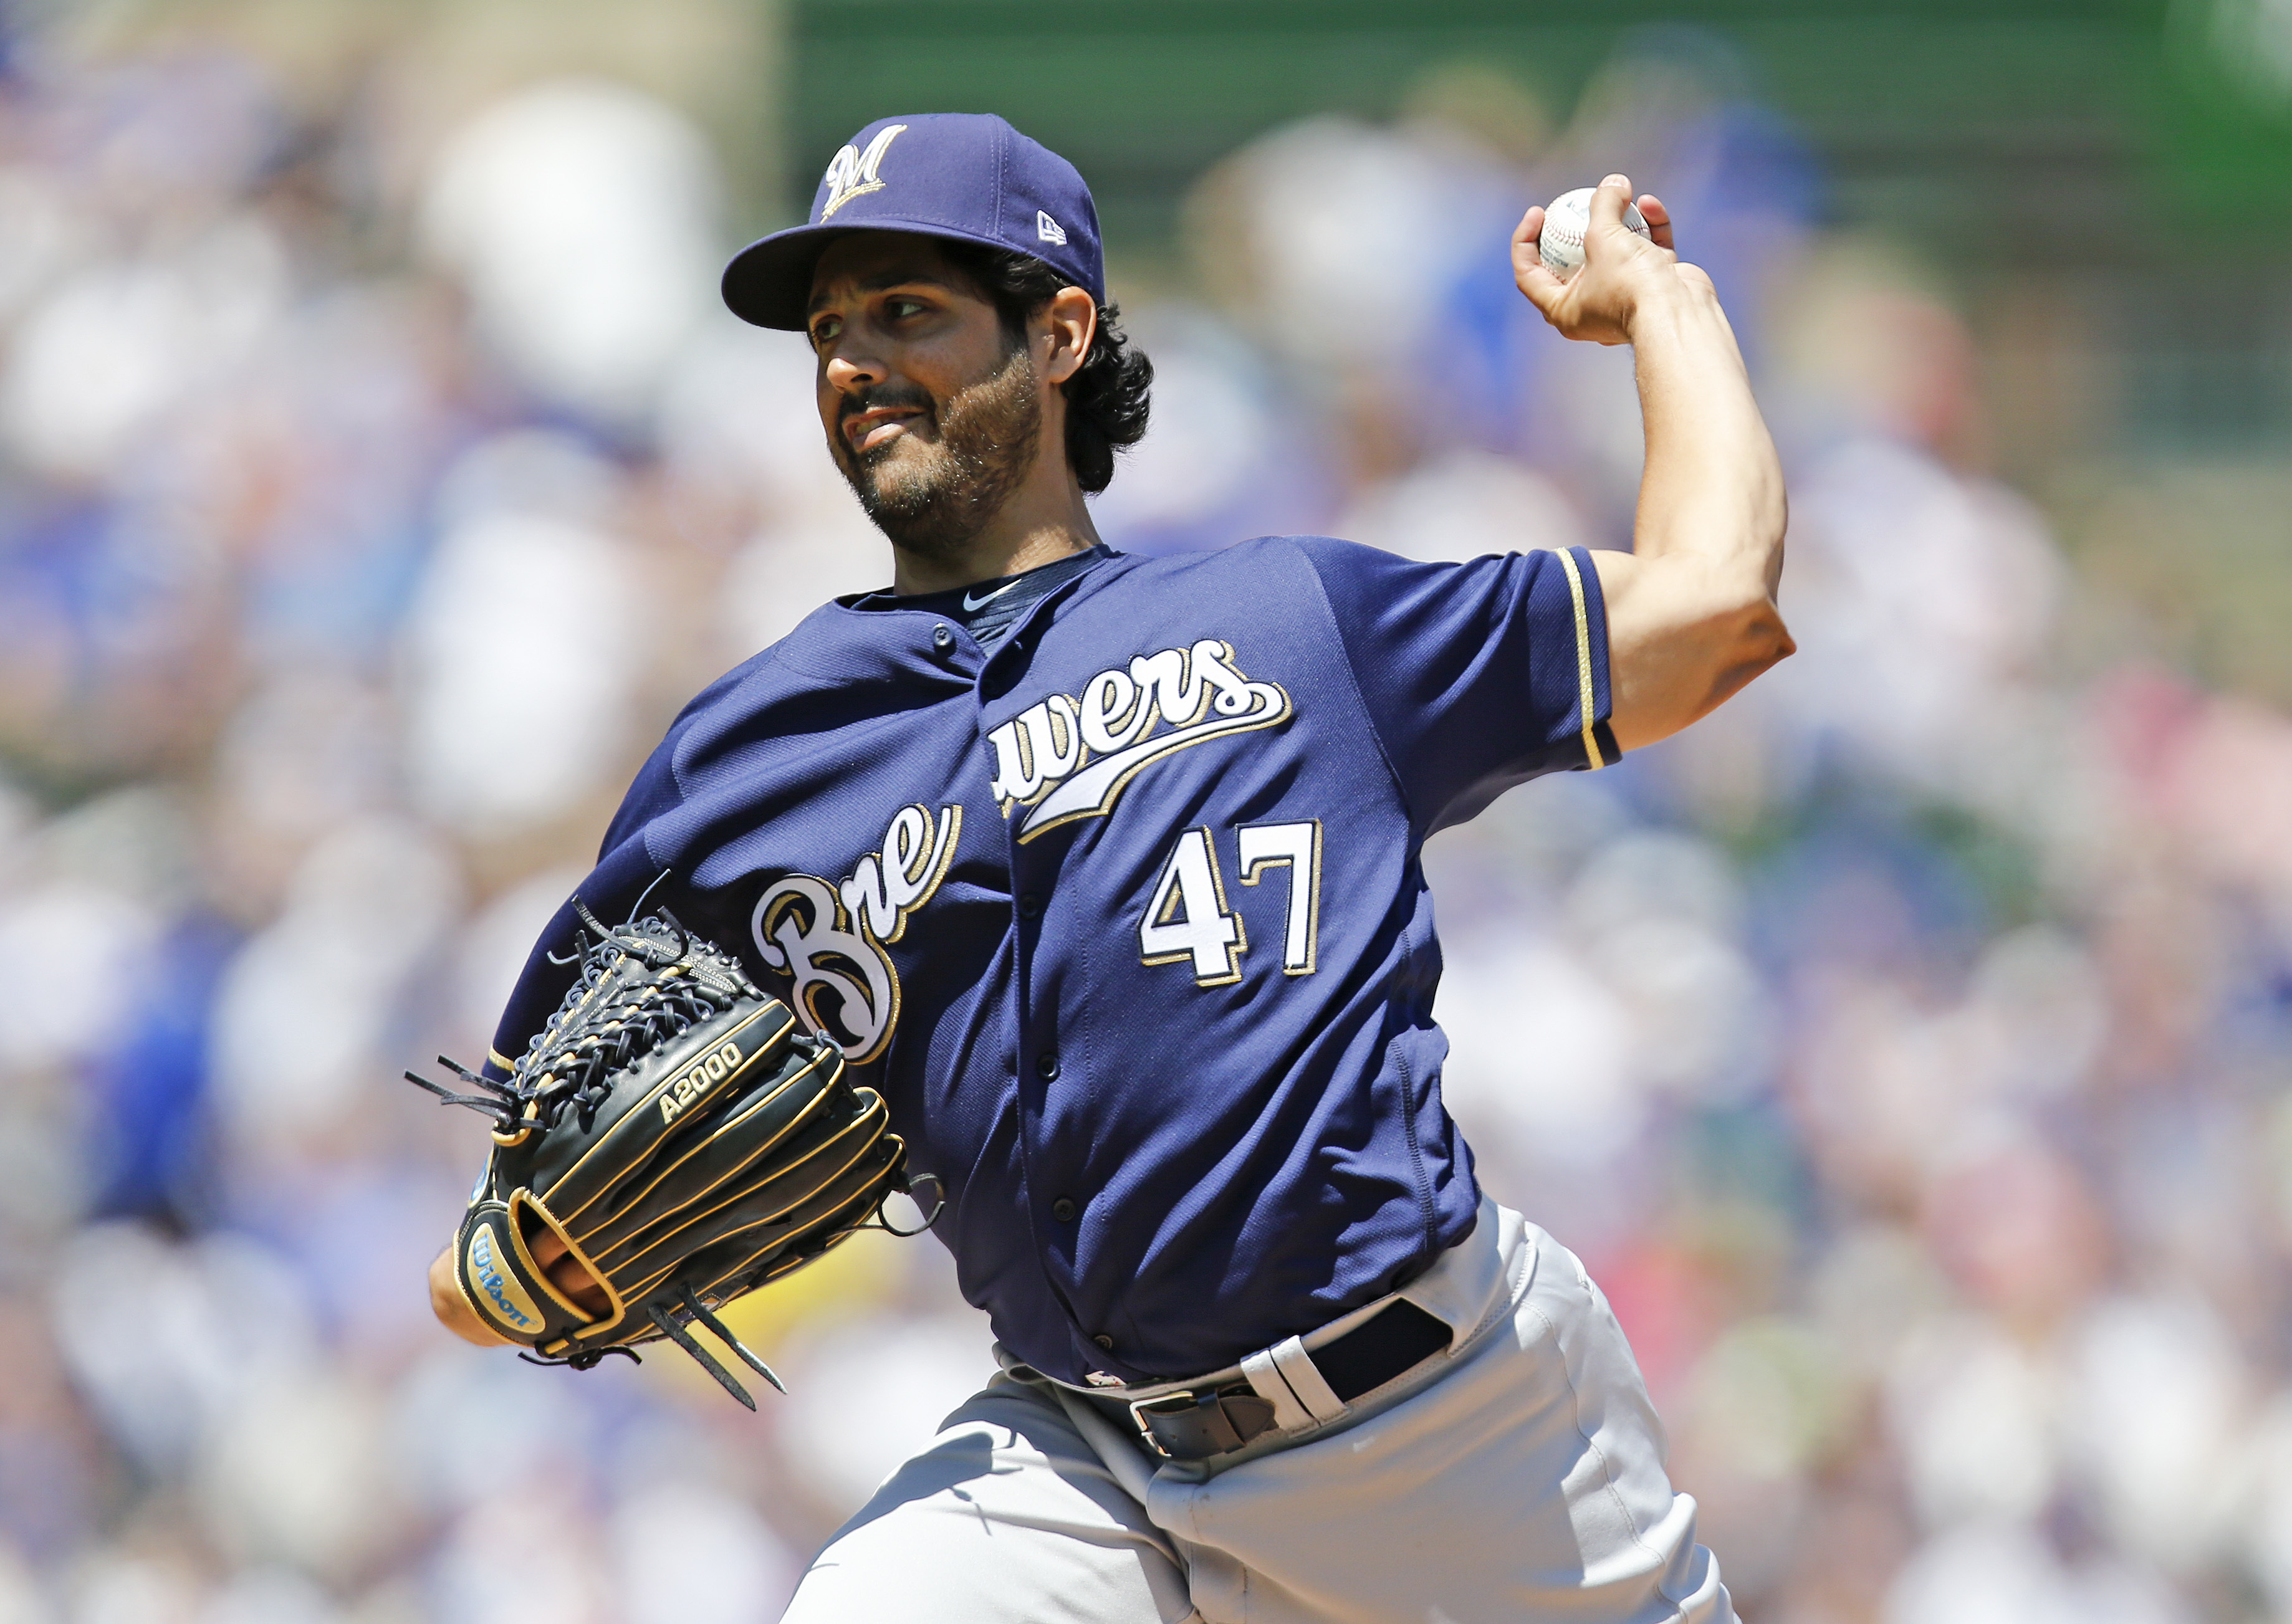 The White Sox are close to signing pitcher Gio Gonzalez.